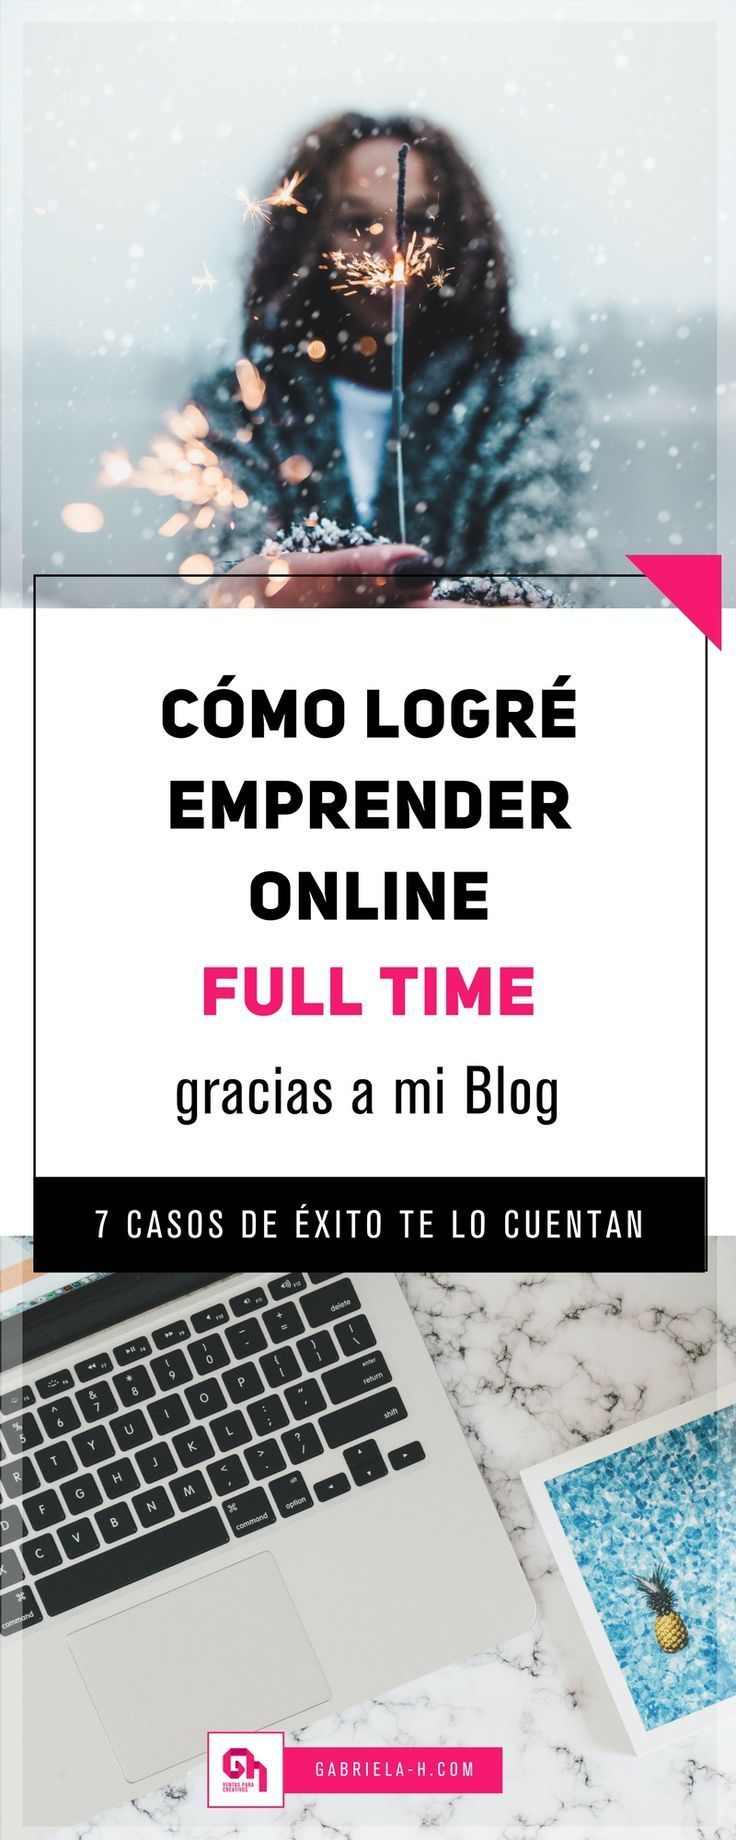 En este post 7 emprendedores digitales nos cuentan cómo lograron emprender online full time gracias a sus blogs. https://www.gabriela-h.com/blog/blogger-full-time-casos-de-exito #emprenderonline #negociosonline #bloggerargentina #bloggerspaña #blog